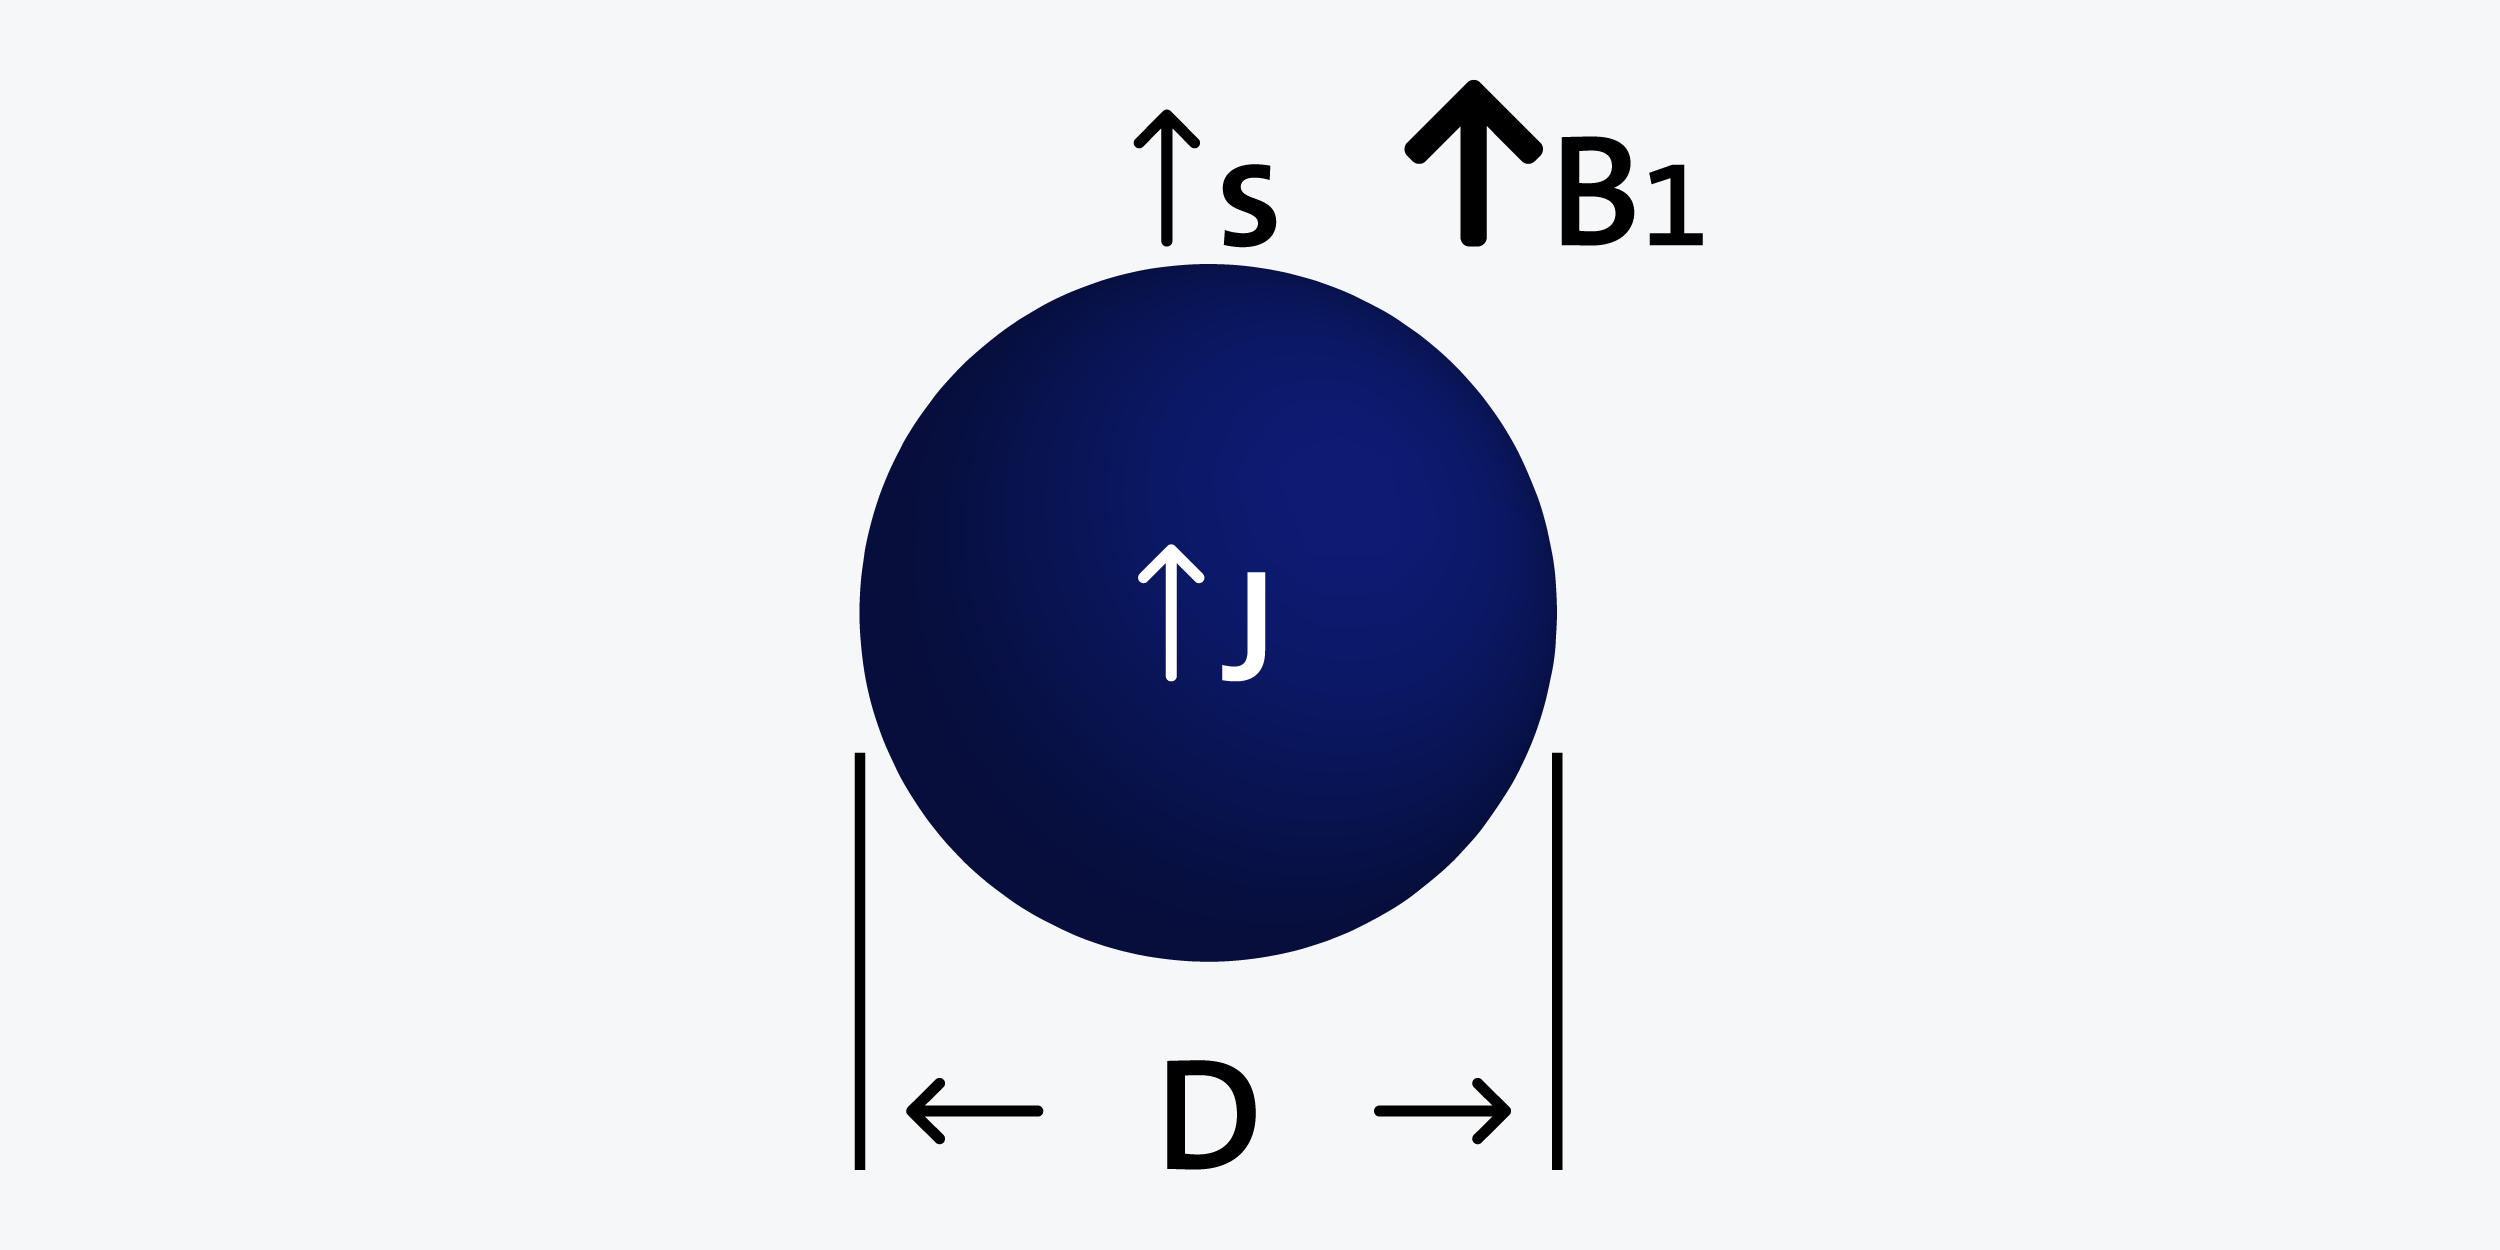 Sphere - Axially magnetized